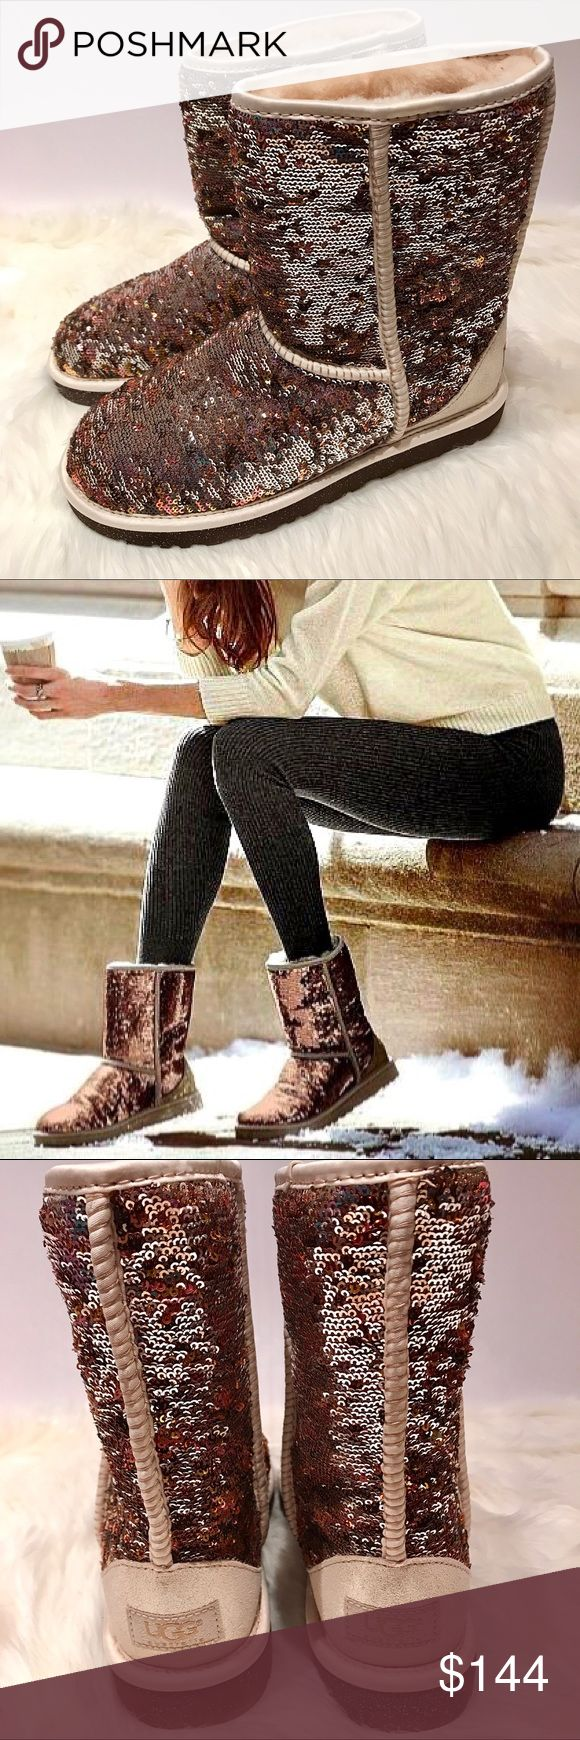 NIB UGG Classic Short Sparkles Boots Size 7 NIB UGG Classic Short Sparkles Boots Size 7  The official color of these boots is champagne. However, the colors change from gold to bronze to champagne depending on how the sequins catch the light. These multi-tonal beauties add a touch of glam with the comfort of the UGGS we all know and love. No trades but offers are welcome. I video record the packaging and shipping of my items to protect both the customer and myself. UGG Shoes Ankle Boots…